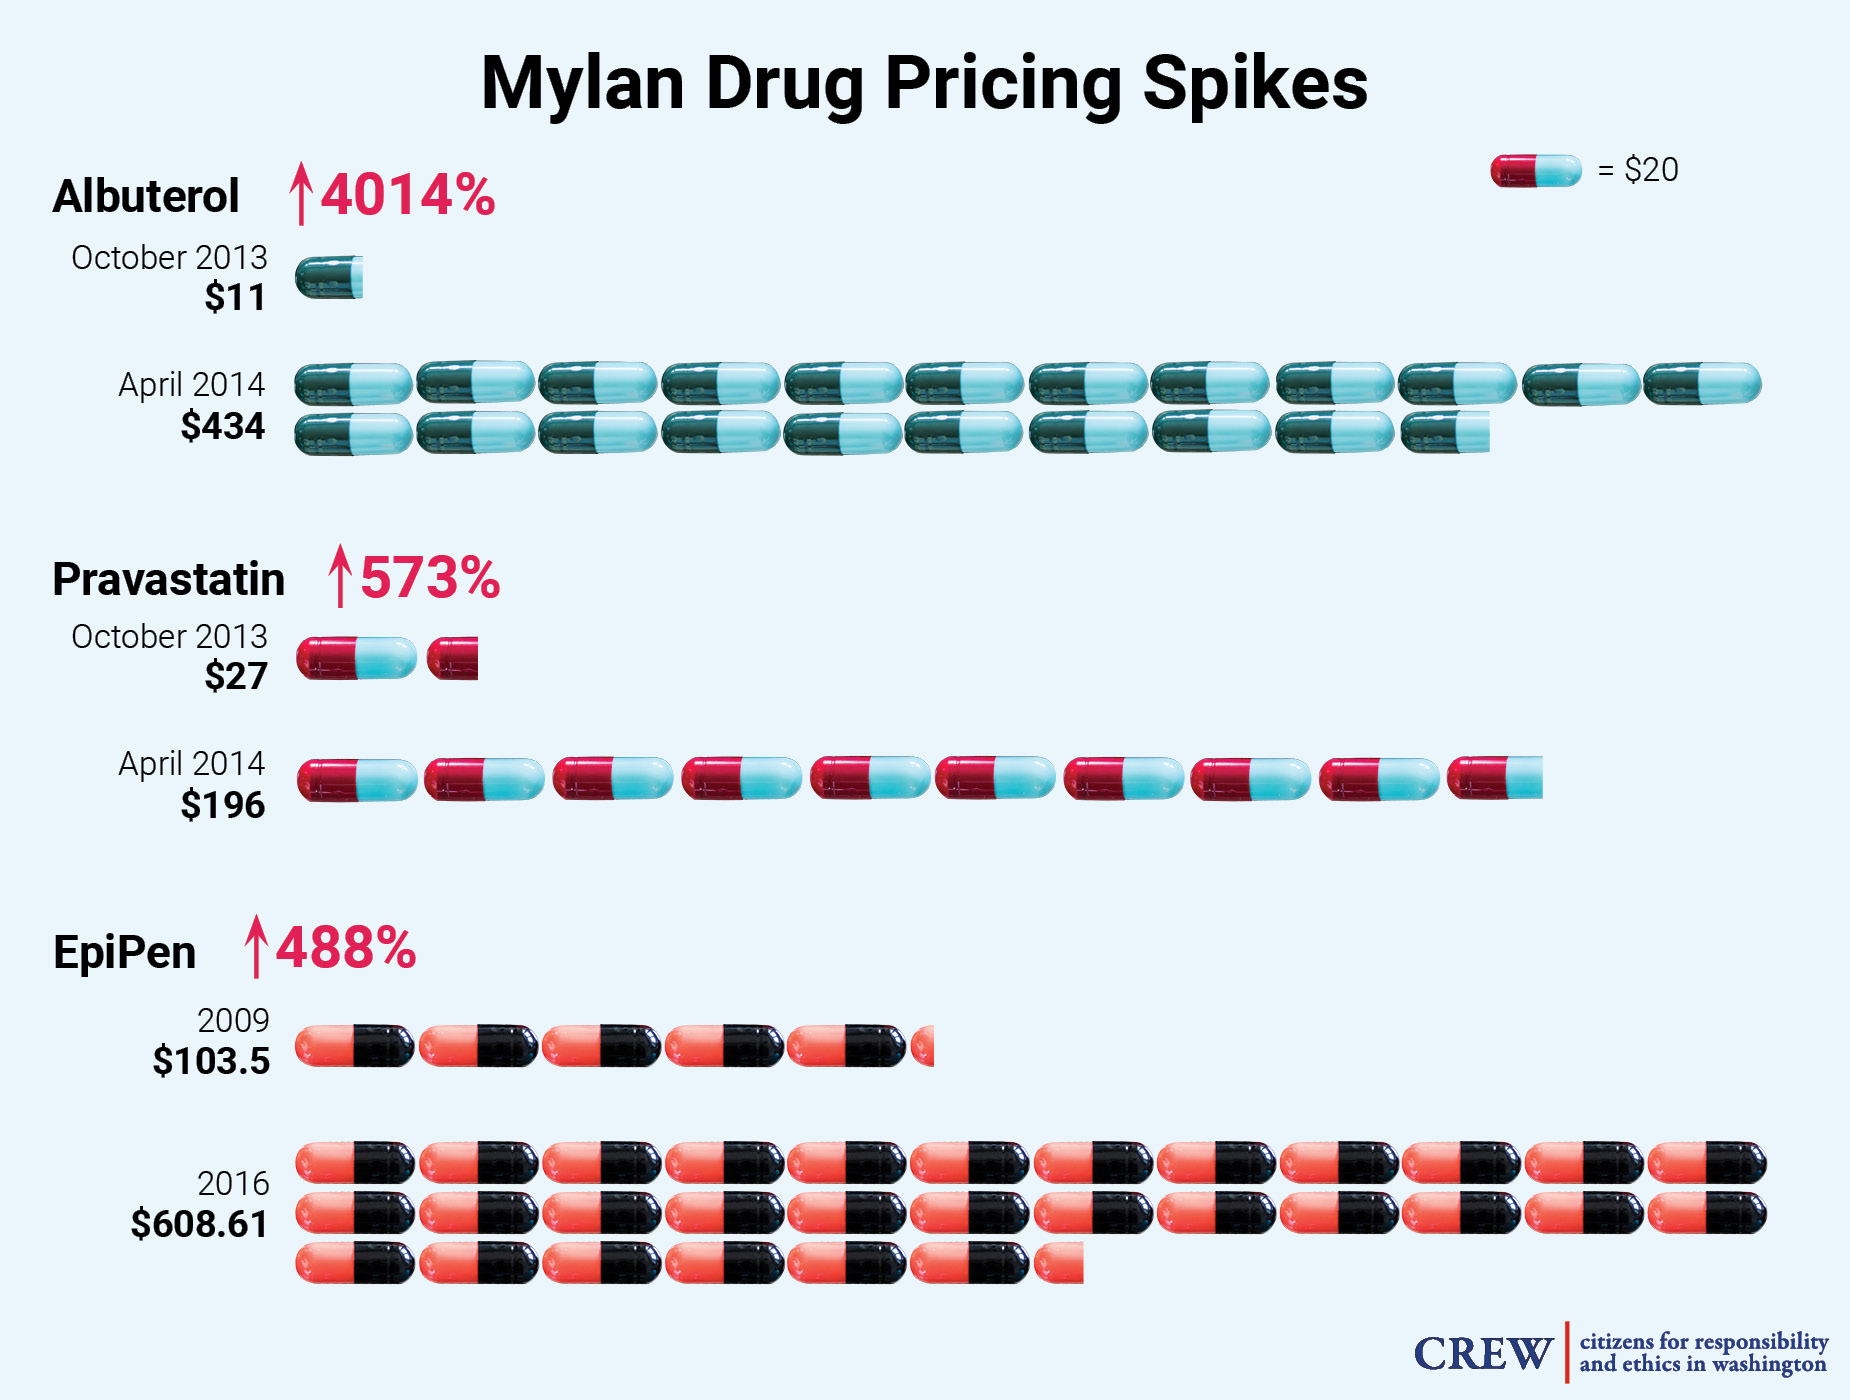 Drug pricing spikes